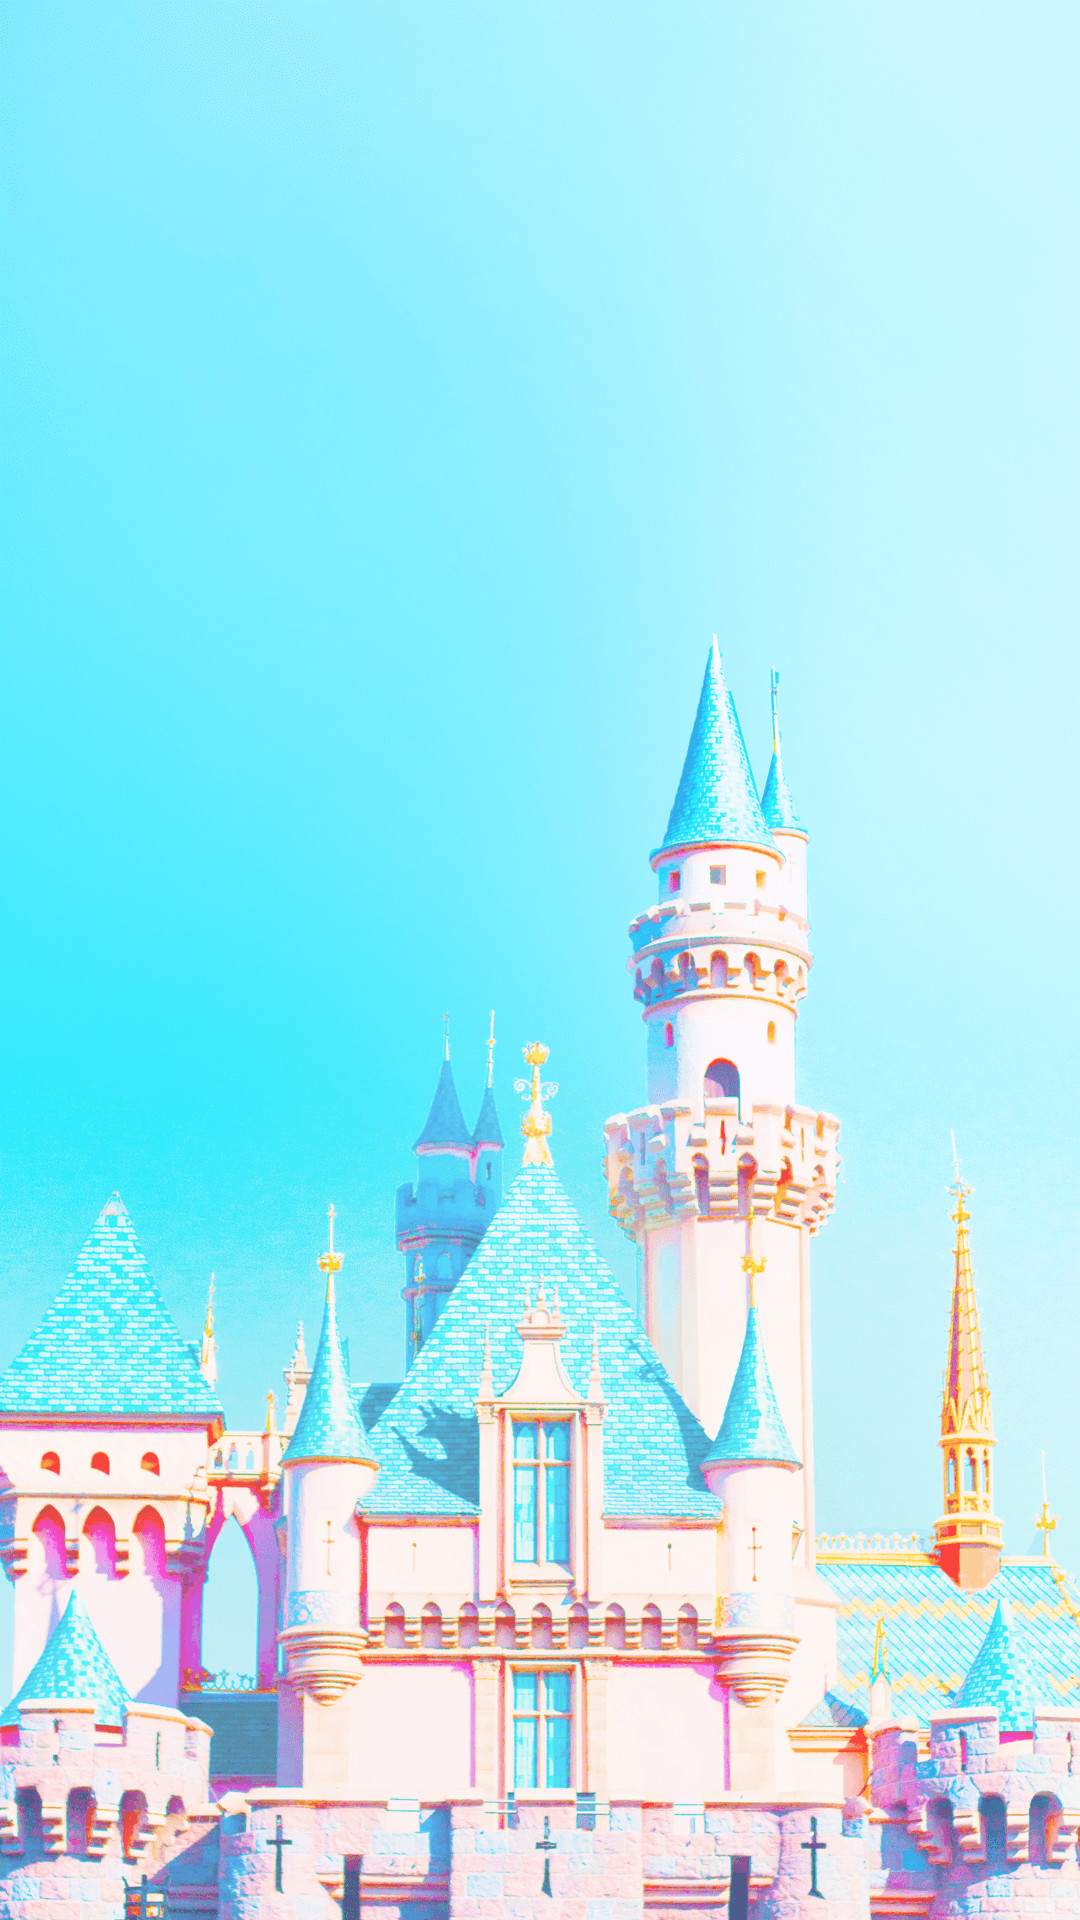 Wallpaper Disneyland Posted By Ryan Tremblay